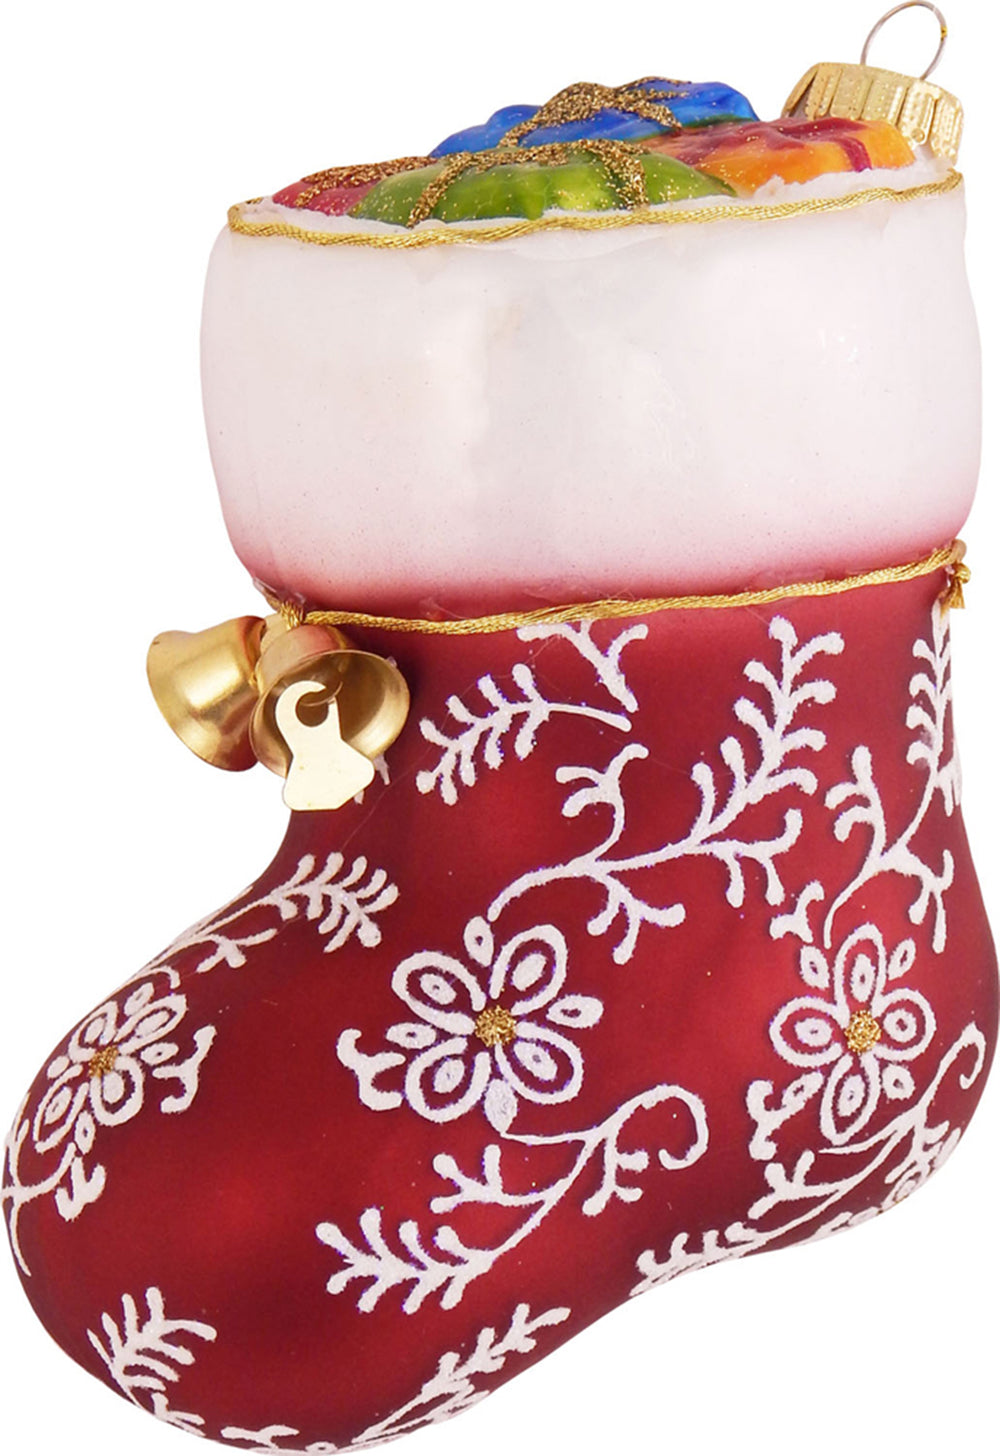 "Krebs Designer Glass Stocking Figurine Christmas Holiday Ornament, 5 1/2"" (140mm)"